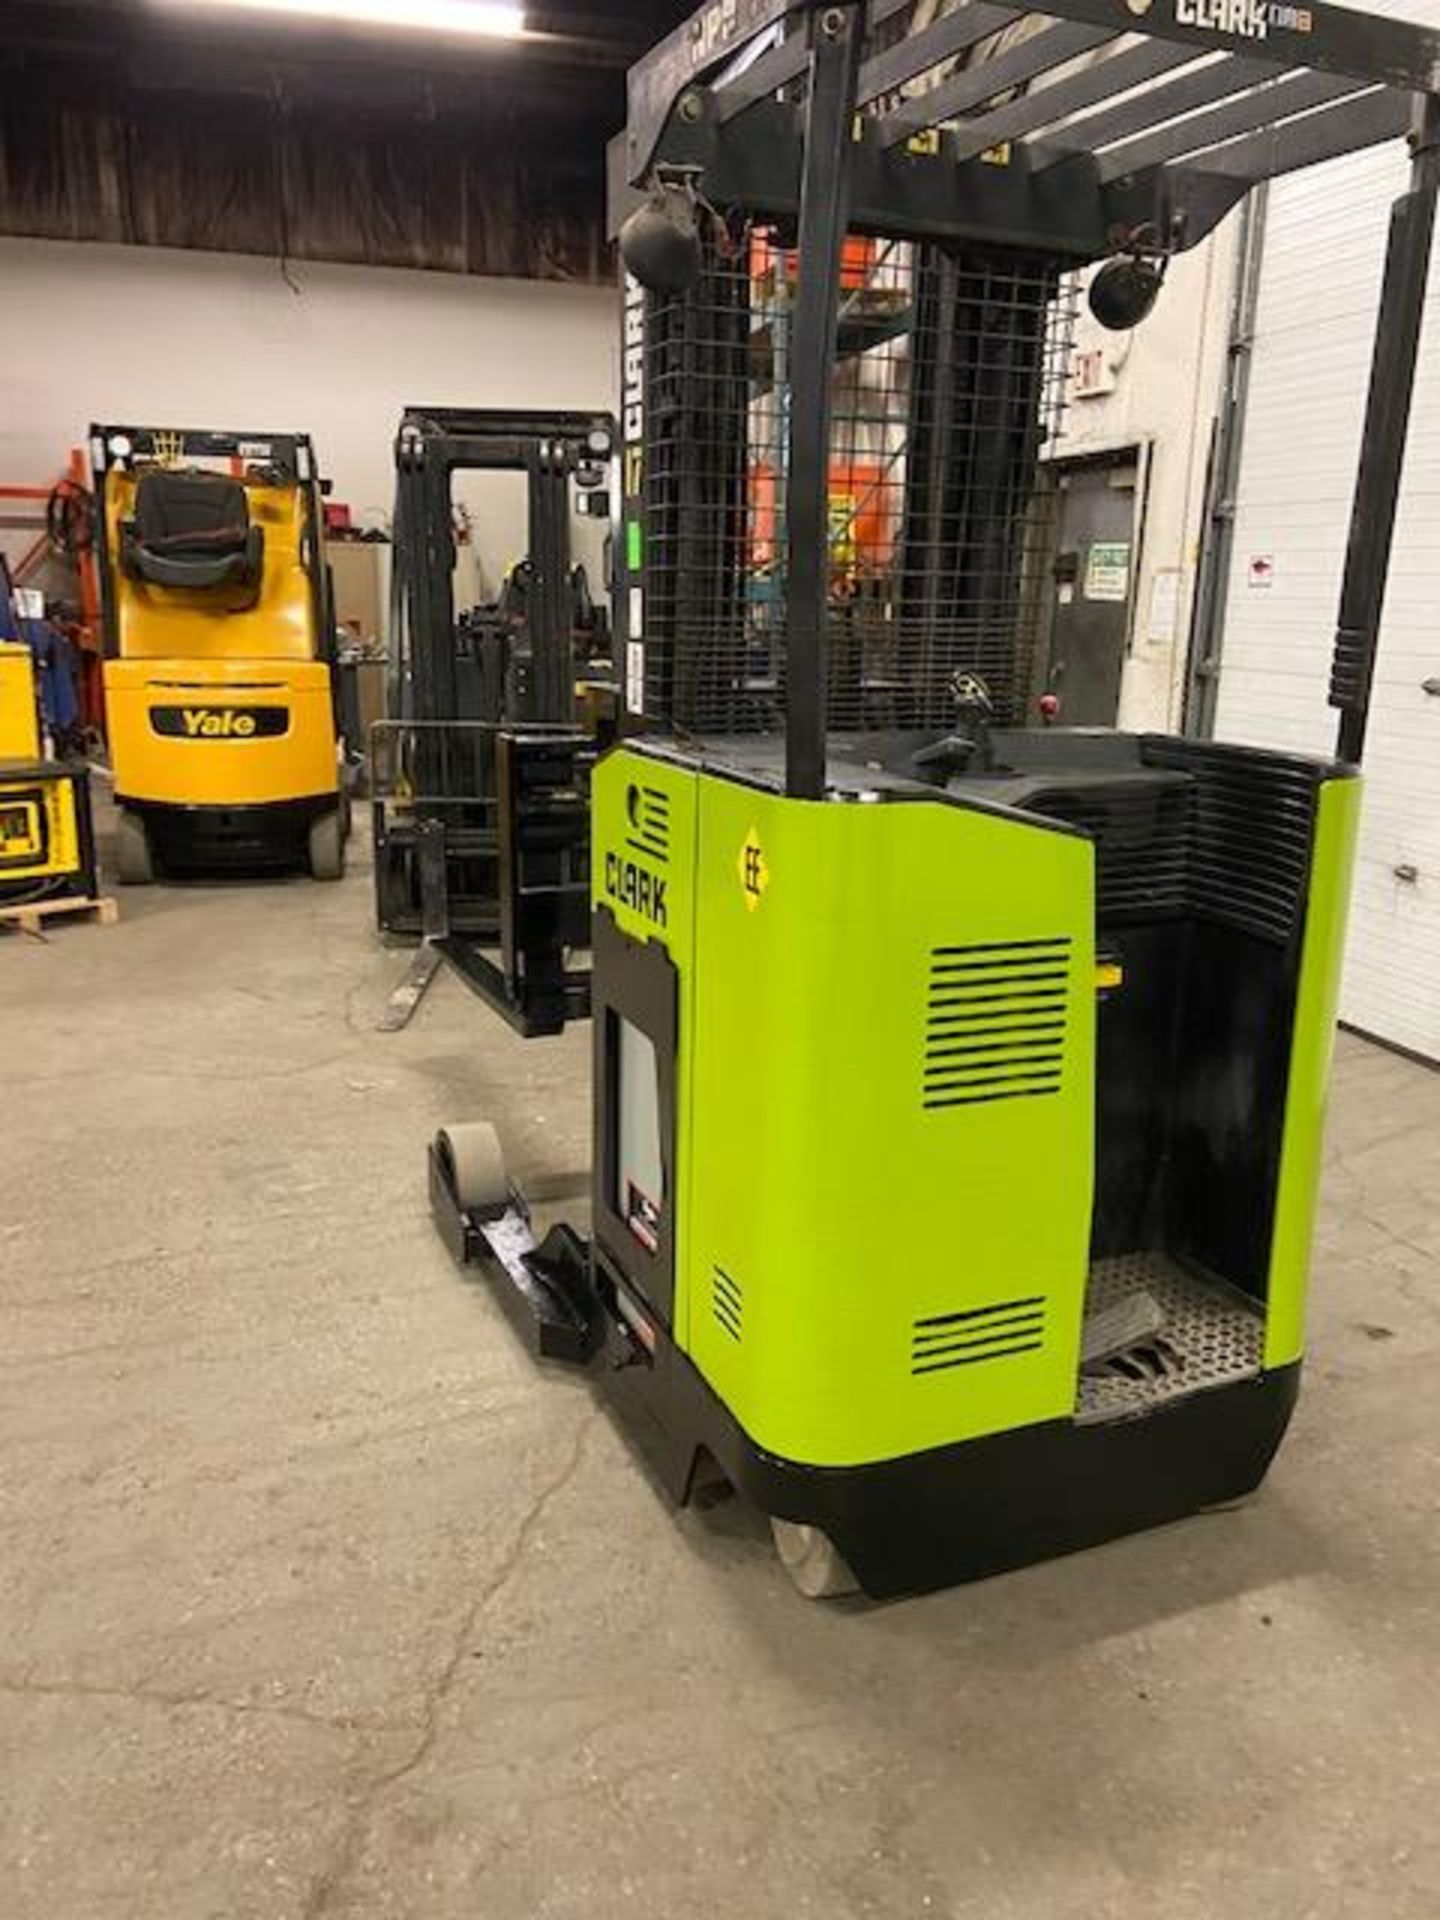 FREE CUSTOMS - Clark Reach Truck EXPLOSION PROOF (EE) Pallet Lifter 3500lbs capacity REACH TRUCK - Image 3 of 3